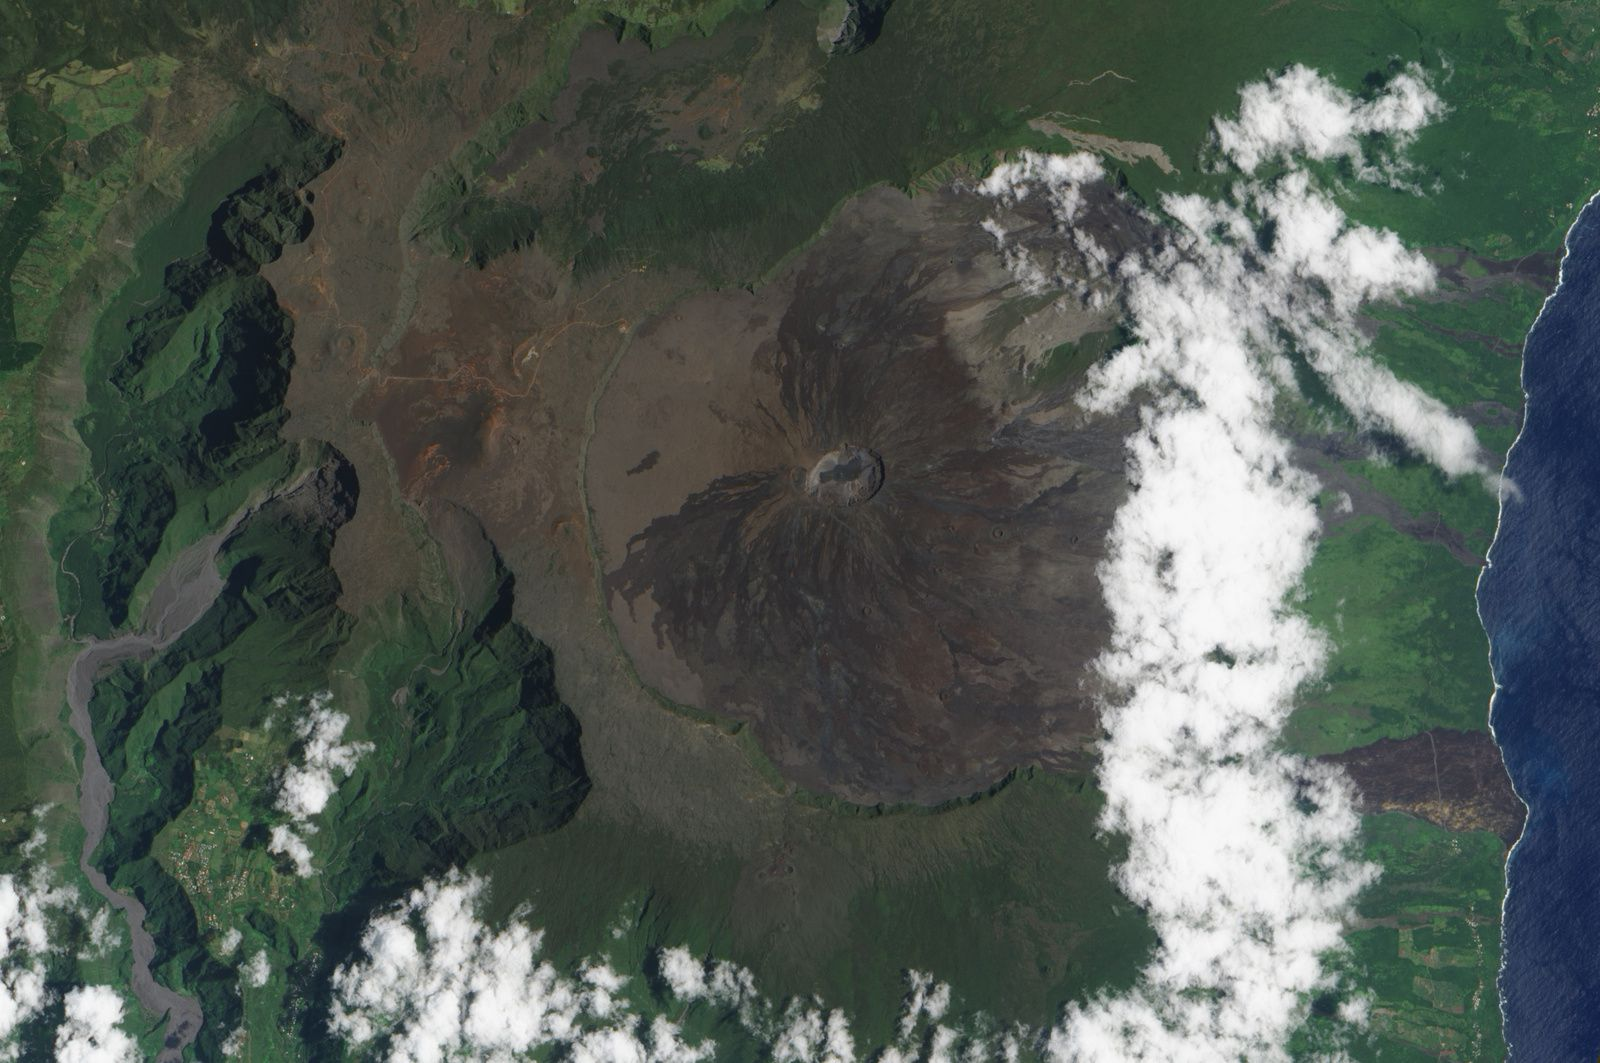 Le Piton de La Fournaise - vu par le satellite EO-1 ALI  de la Nasa /Caption by Michon Scott.